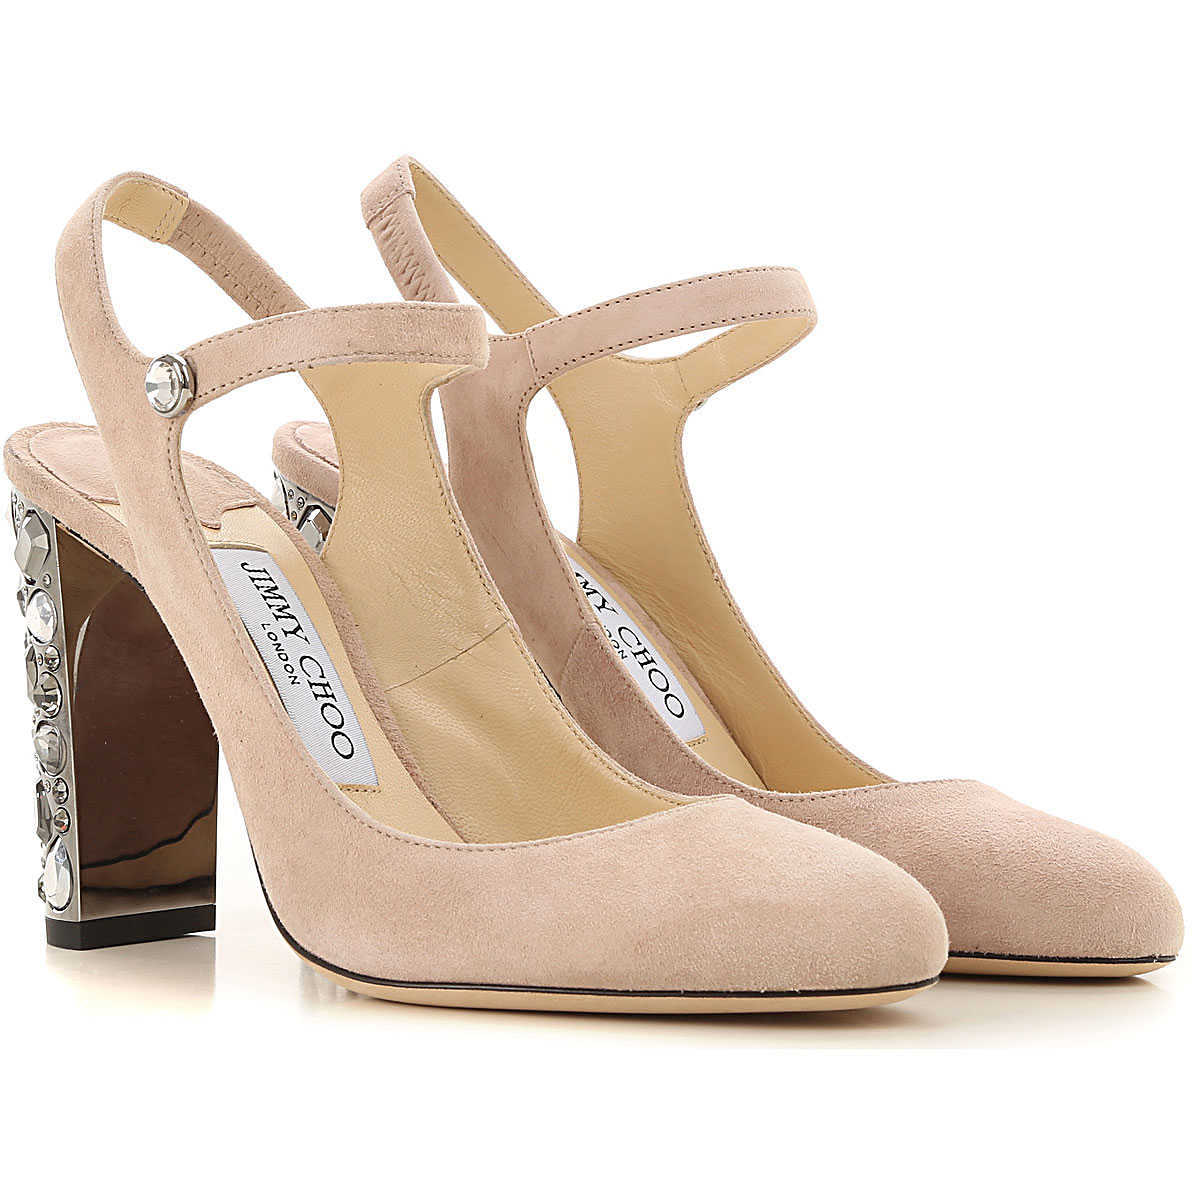 Jimmy Choo Pumps & High Heels for Women in Outlet Light pale pink Canada - GOOFASH - Womens PUMPS